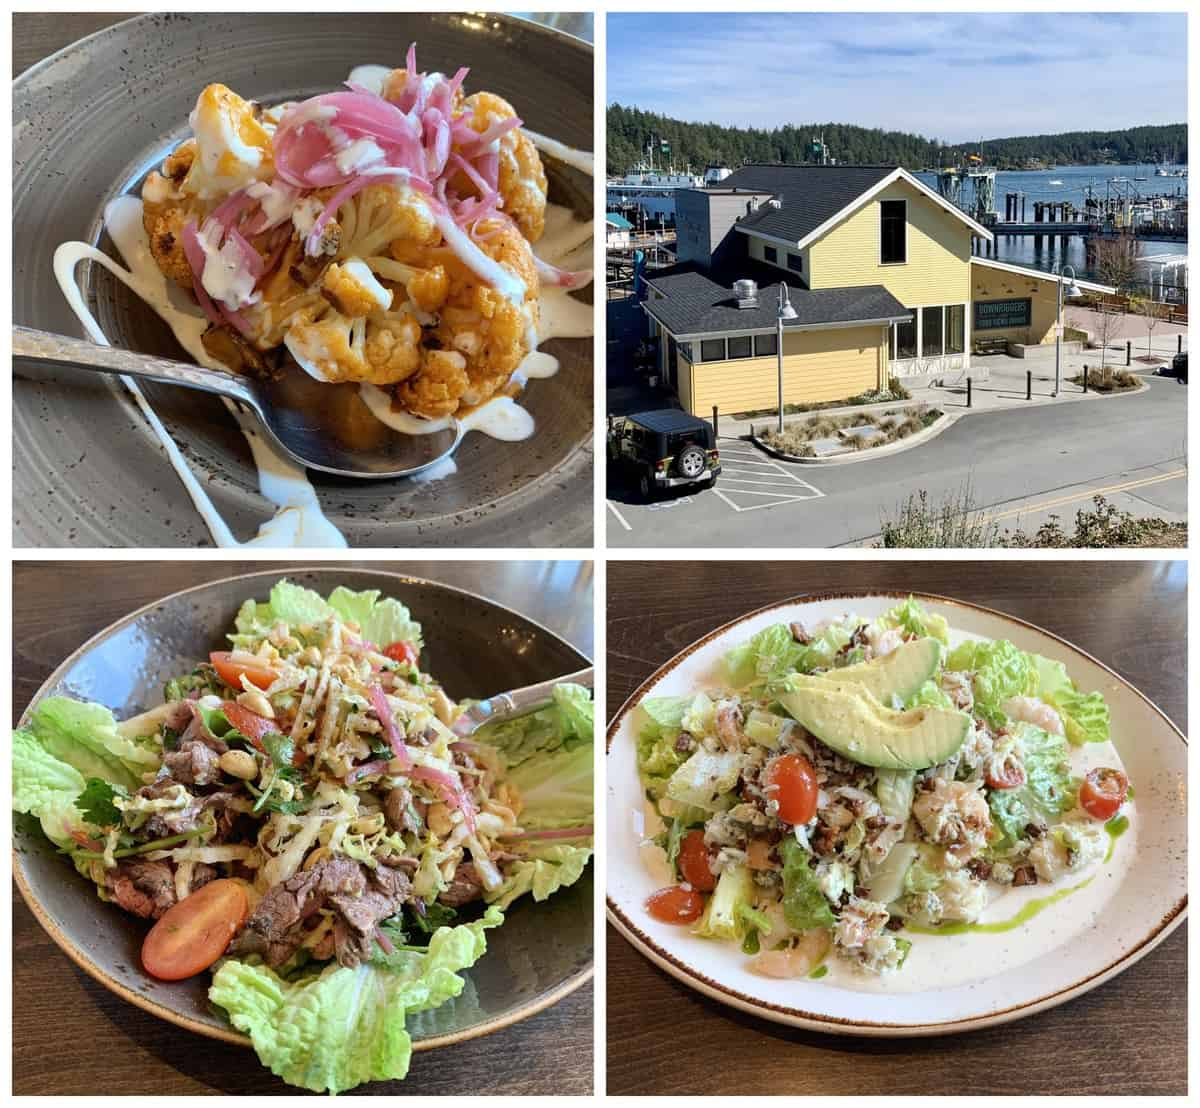 Plates of Keto-friendly food at Downriggers on San Juan Island